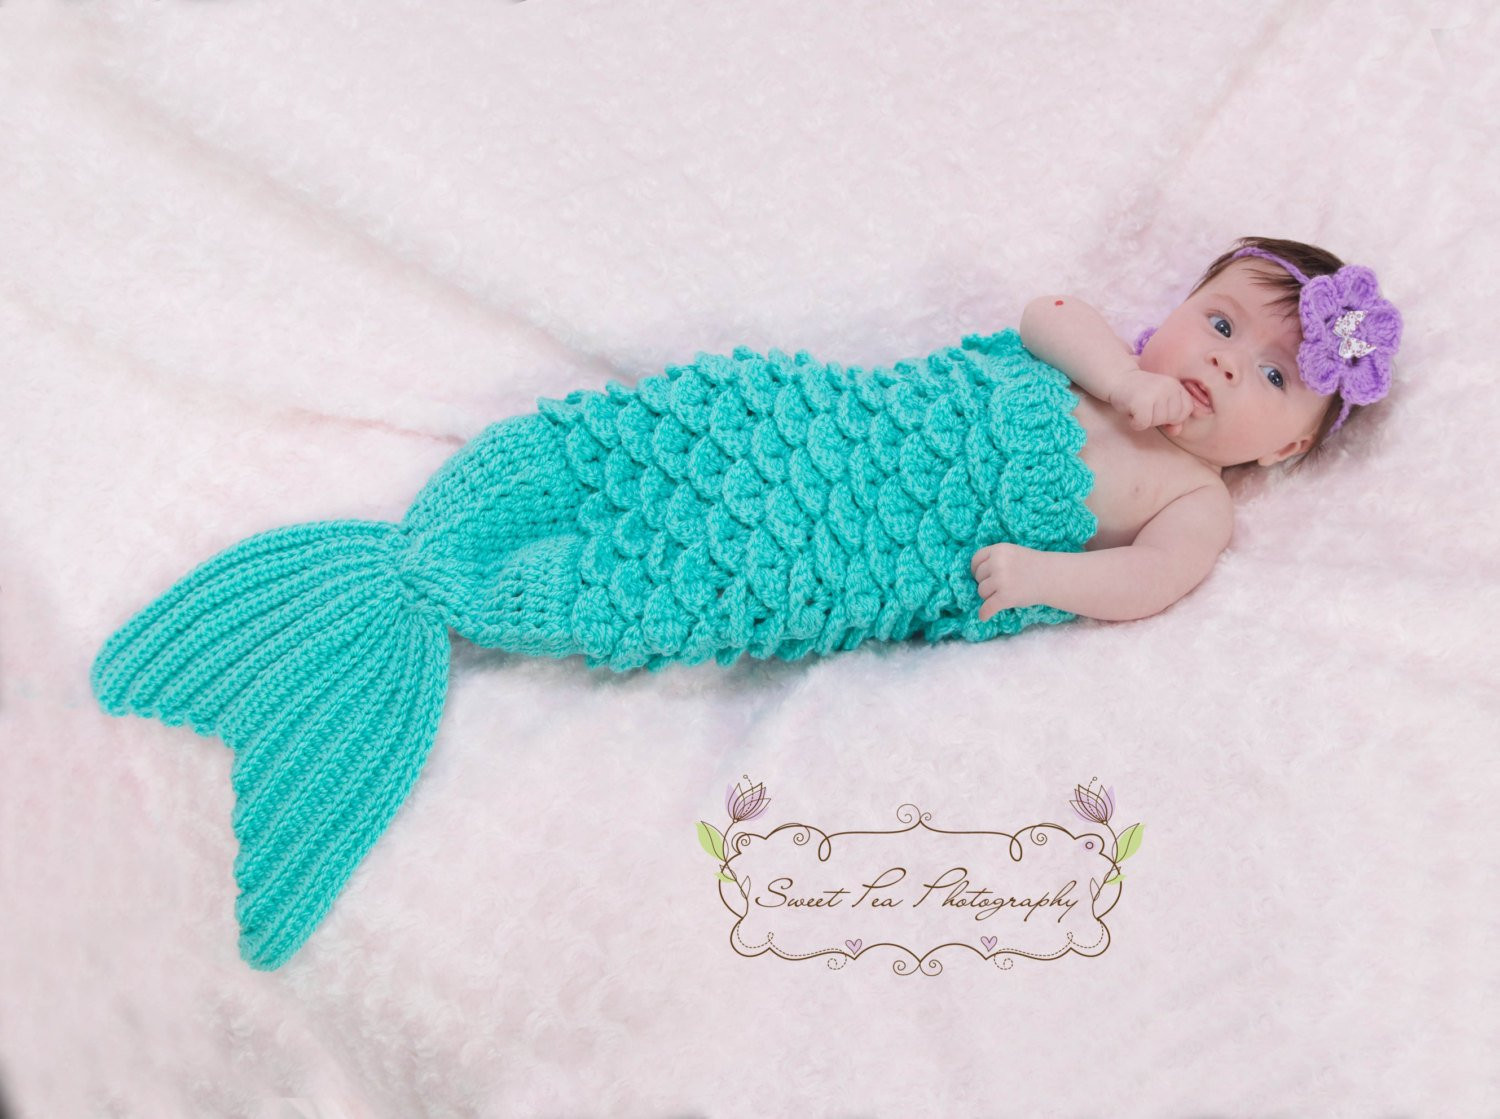 Crochet Mermaid Tail Unique Crochet Mermaid Tail & Headband Prop Instant Download Pdf From Of Adorable 47 Pictures Crochet Mermaid Tail